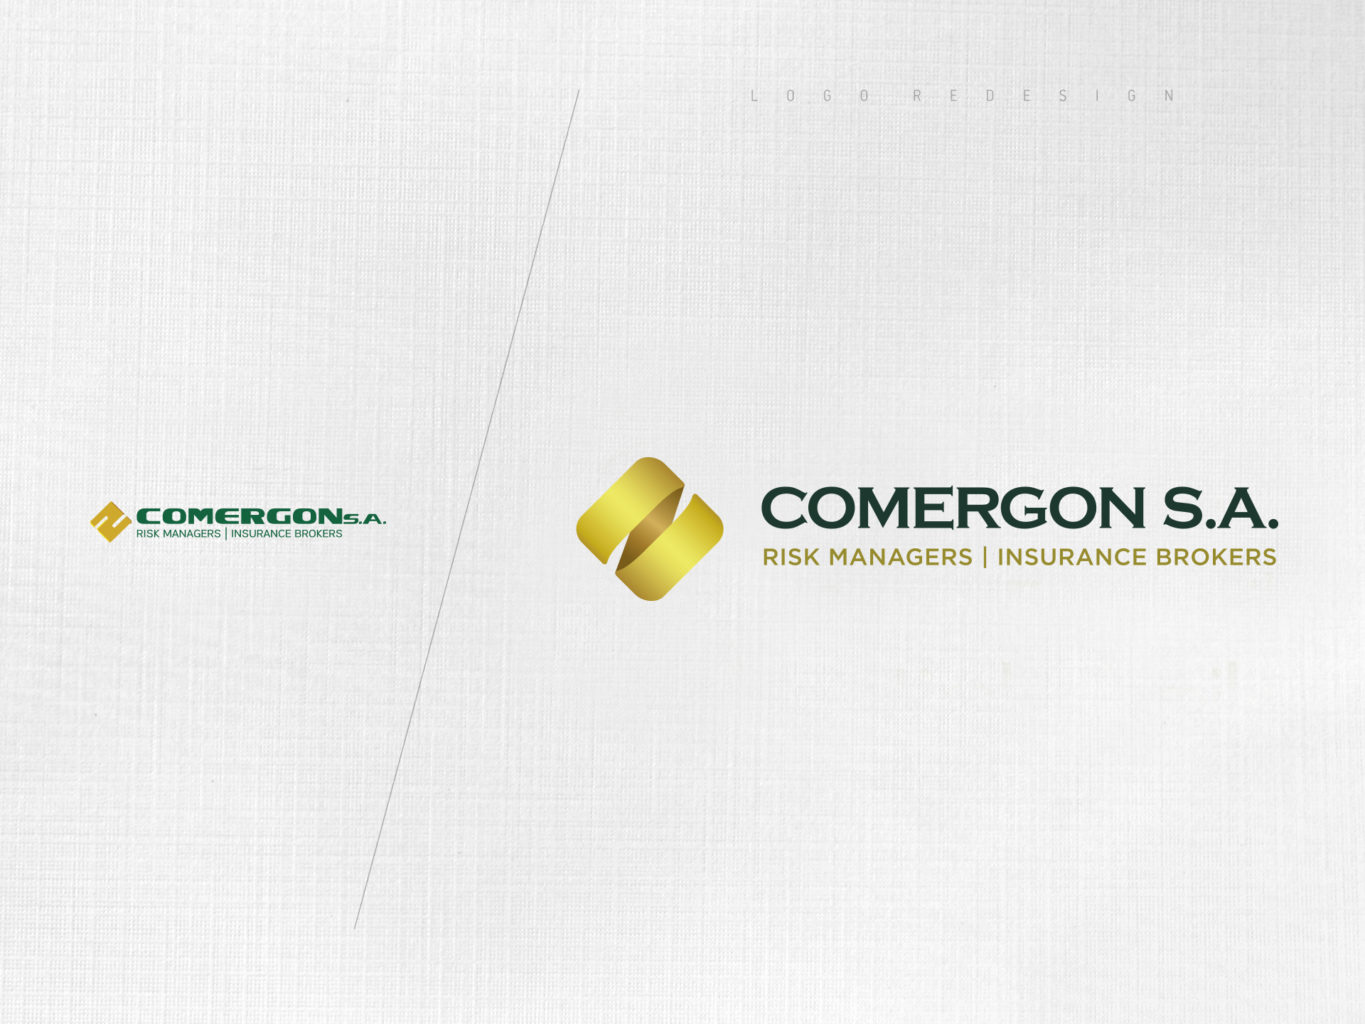 Comergon Risk Managers logo redesign by fiftyeggz